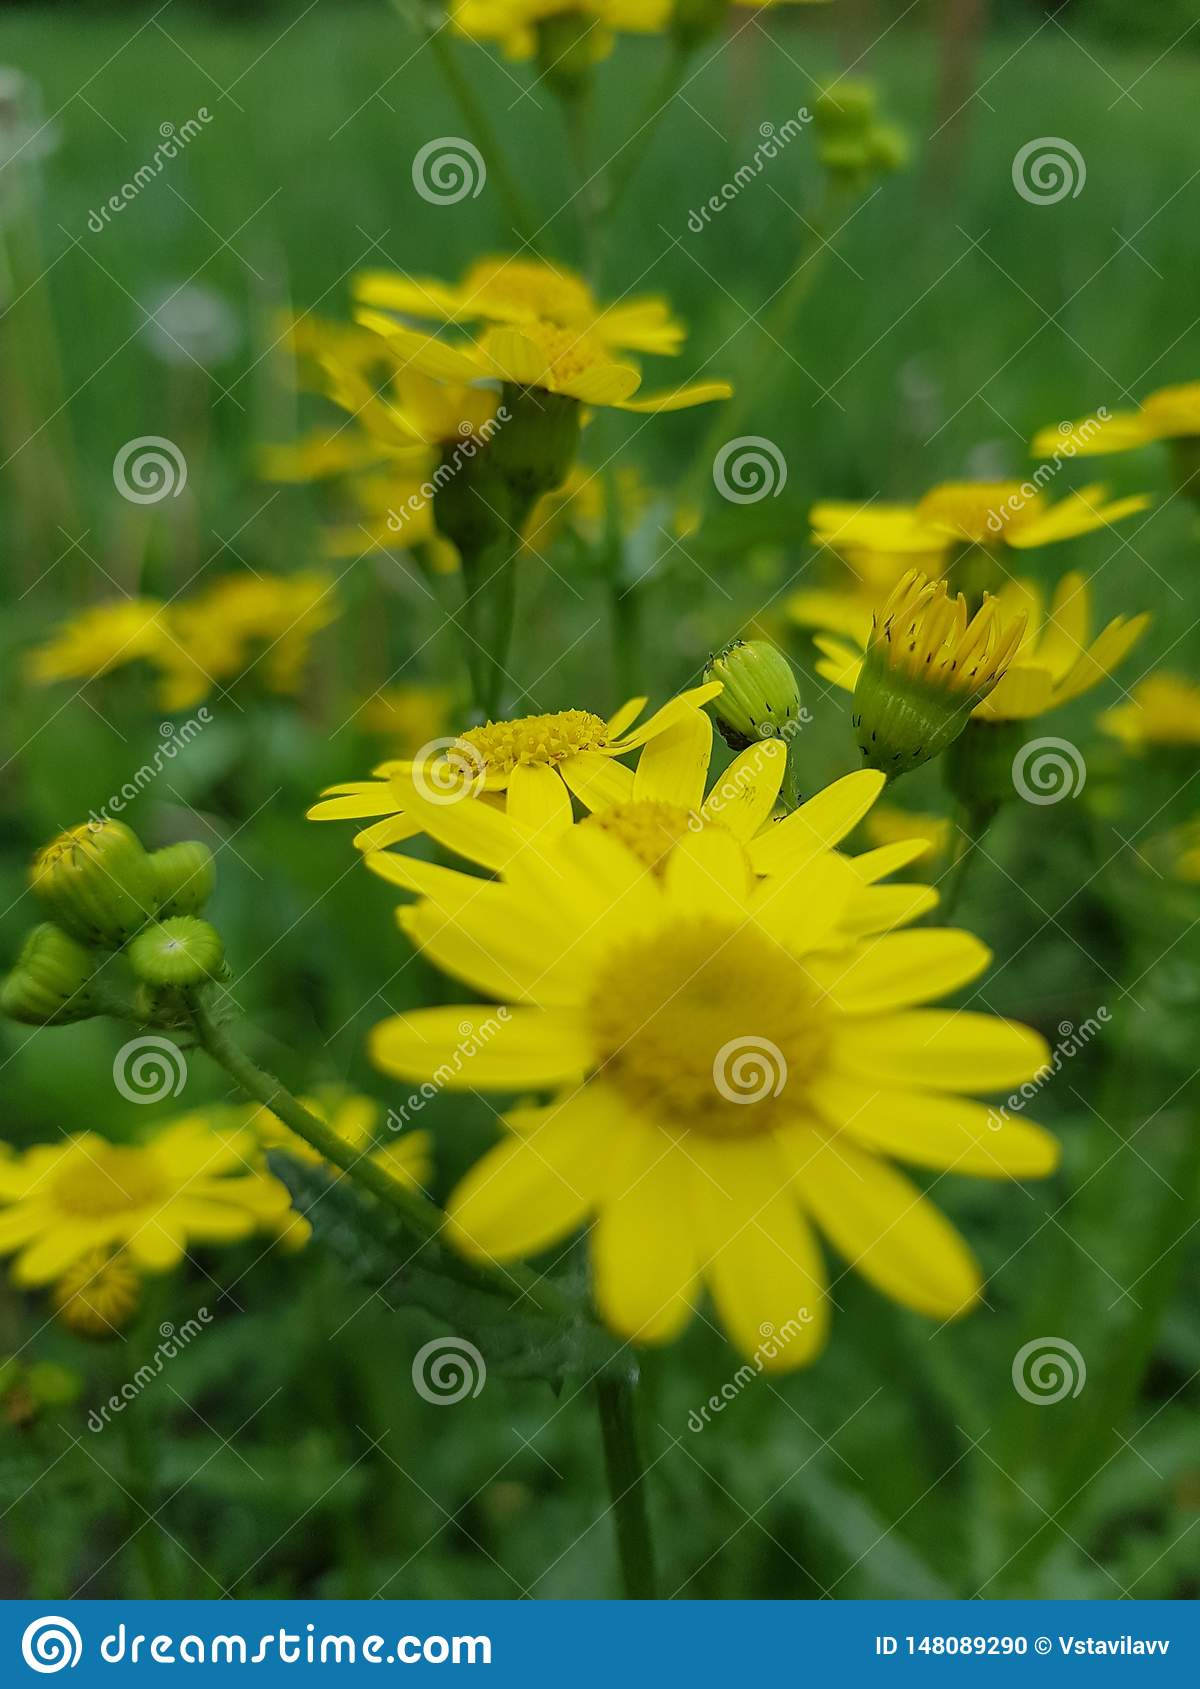 Yellow flowers on a green background.